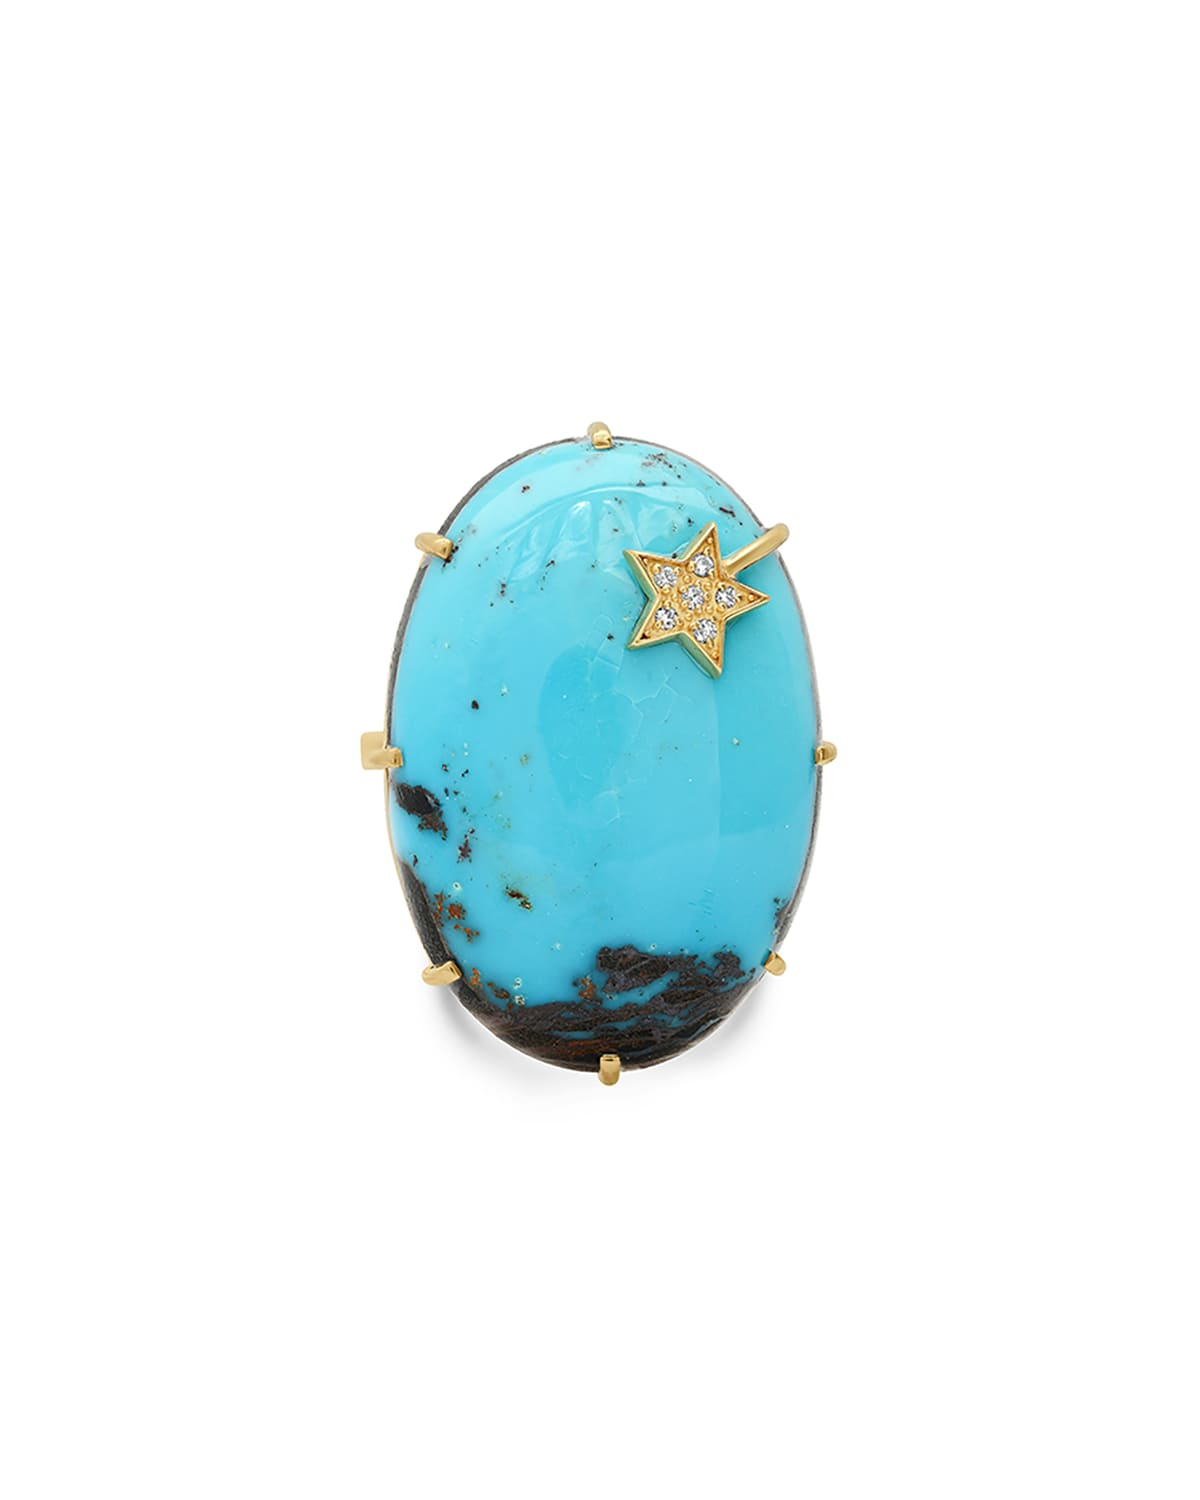 One-of-a-Kind Turquoise Ring w/ Diamond Star